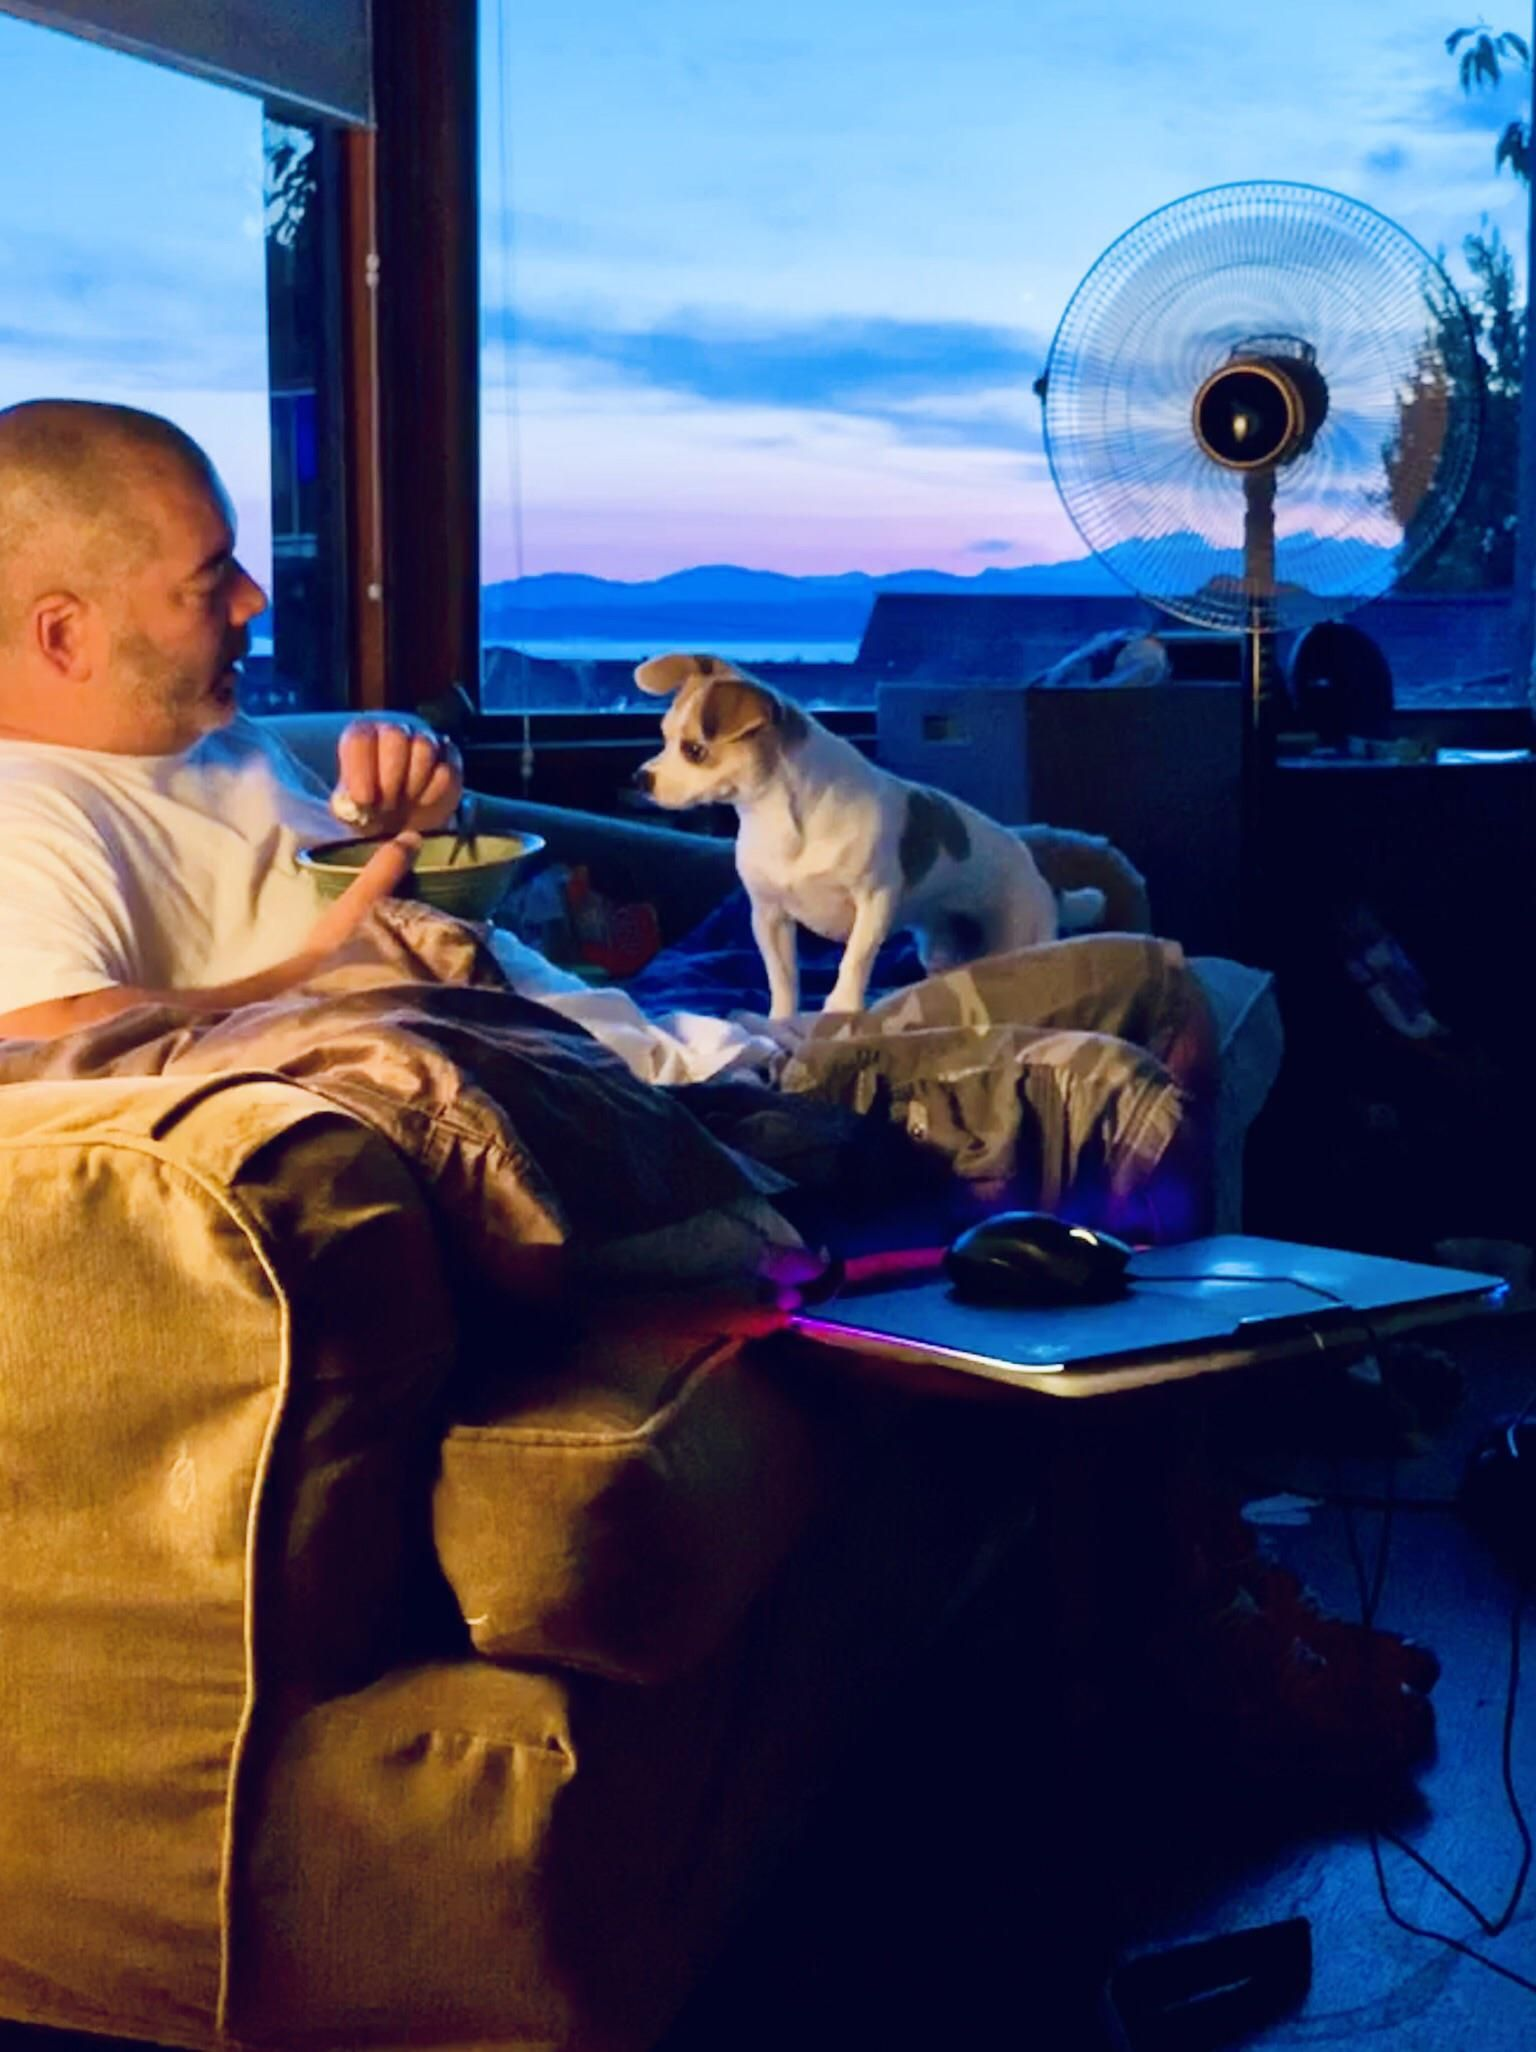 My living room. Seattle. Love pet, Cute pictures, Louie